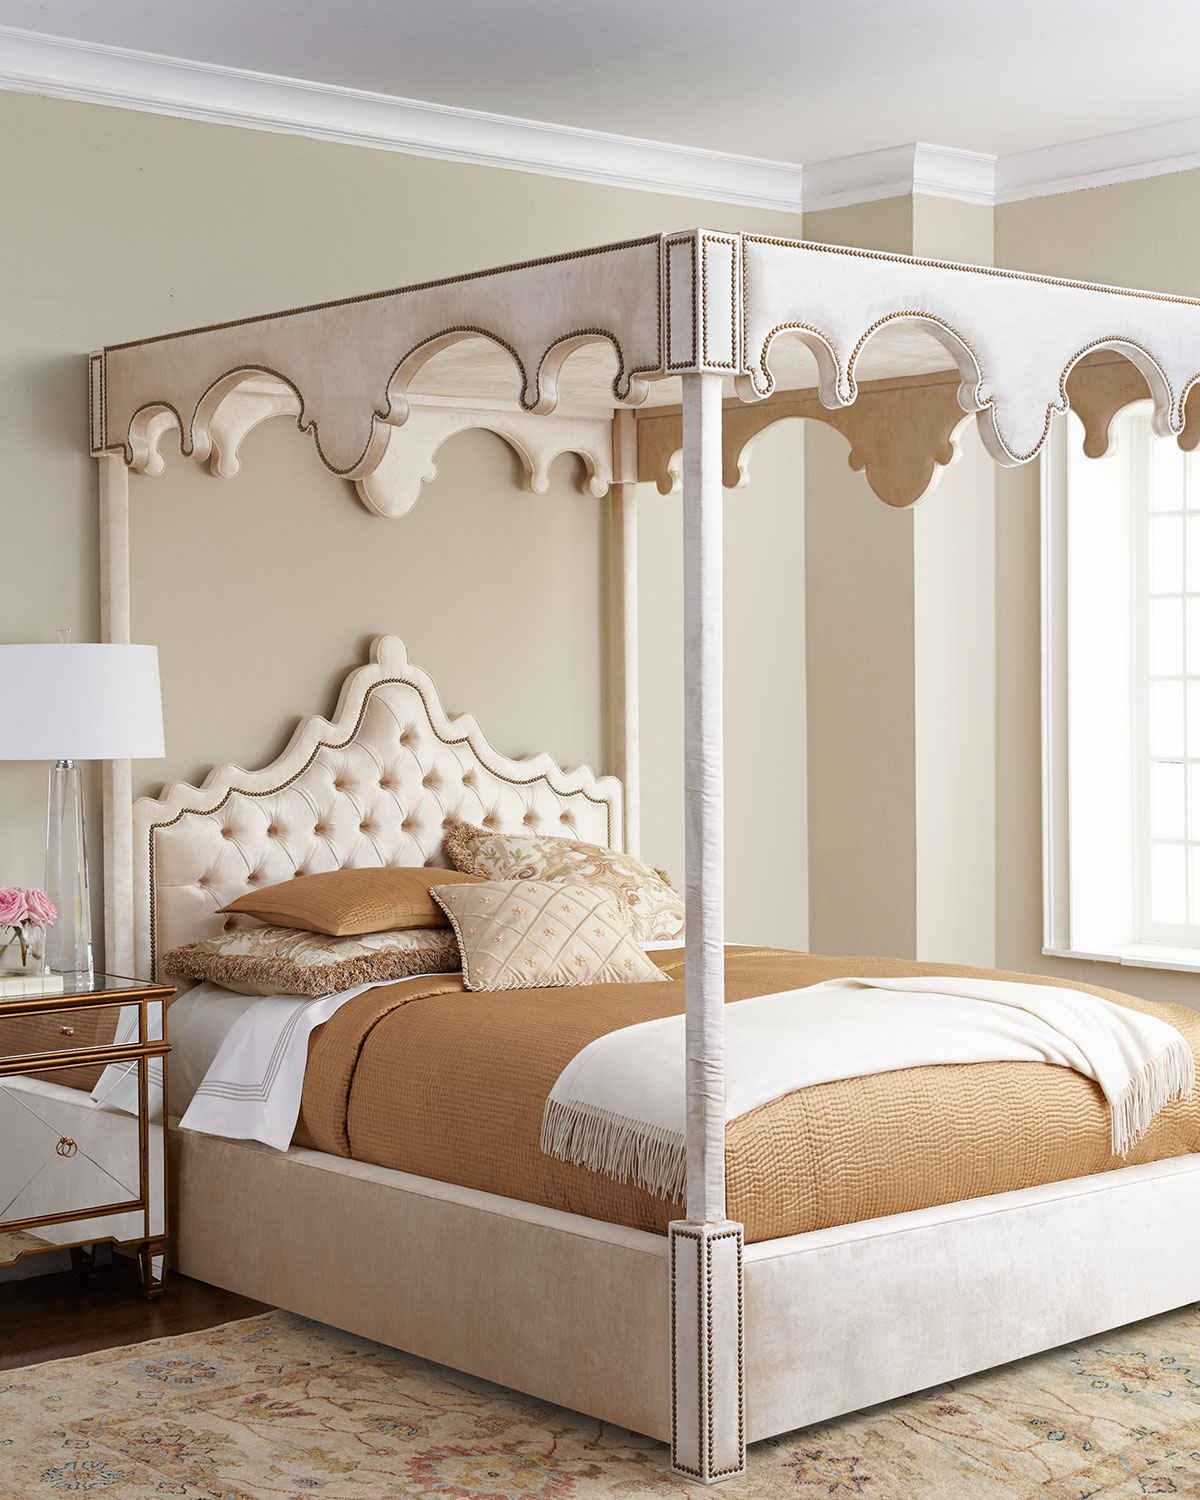 Fascinating four poster beds we pick out 3 of our online - Pictures of canopy beds ...